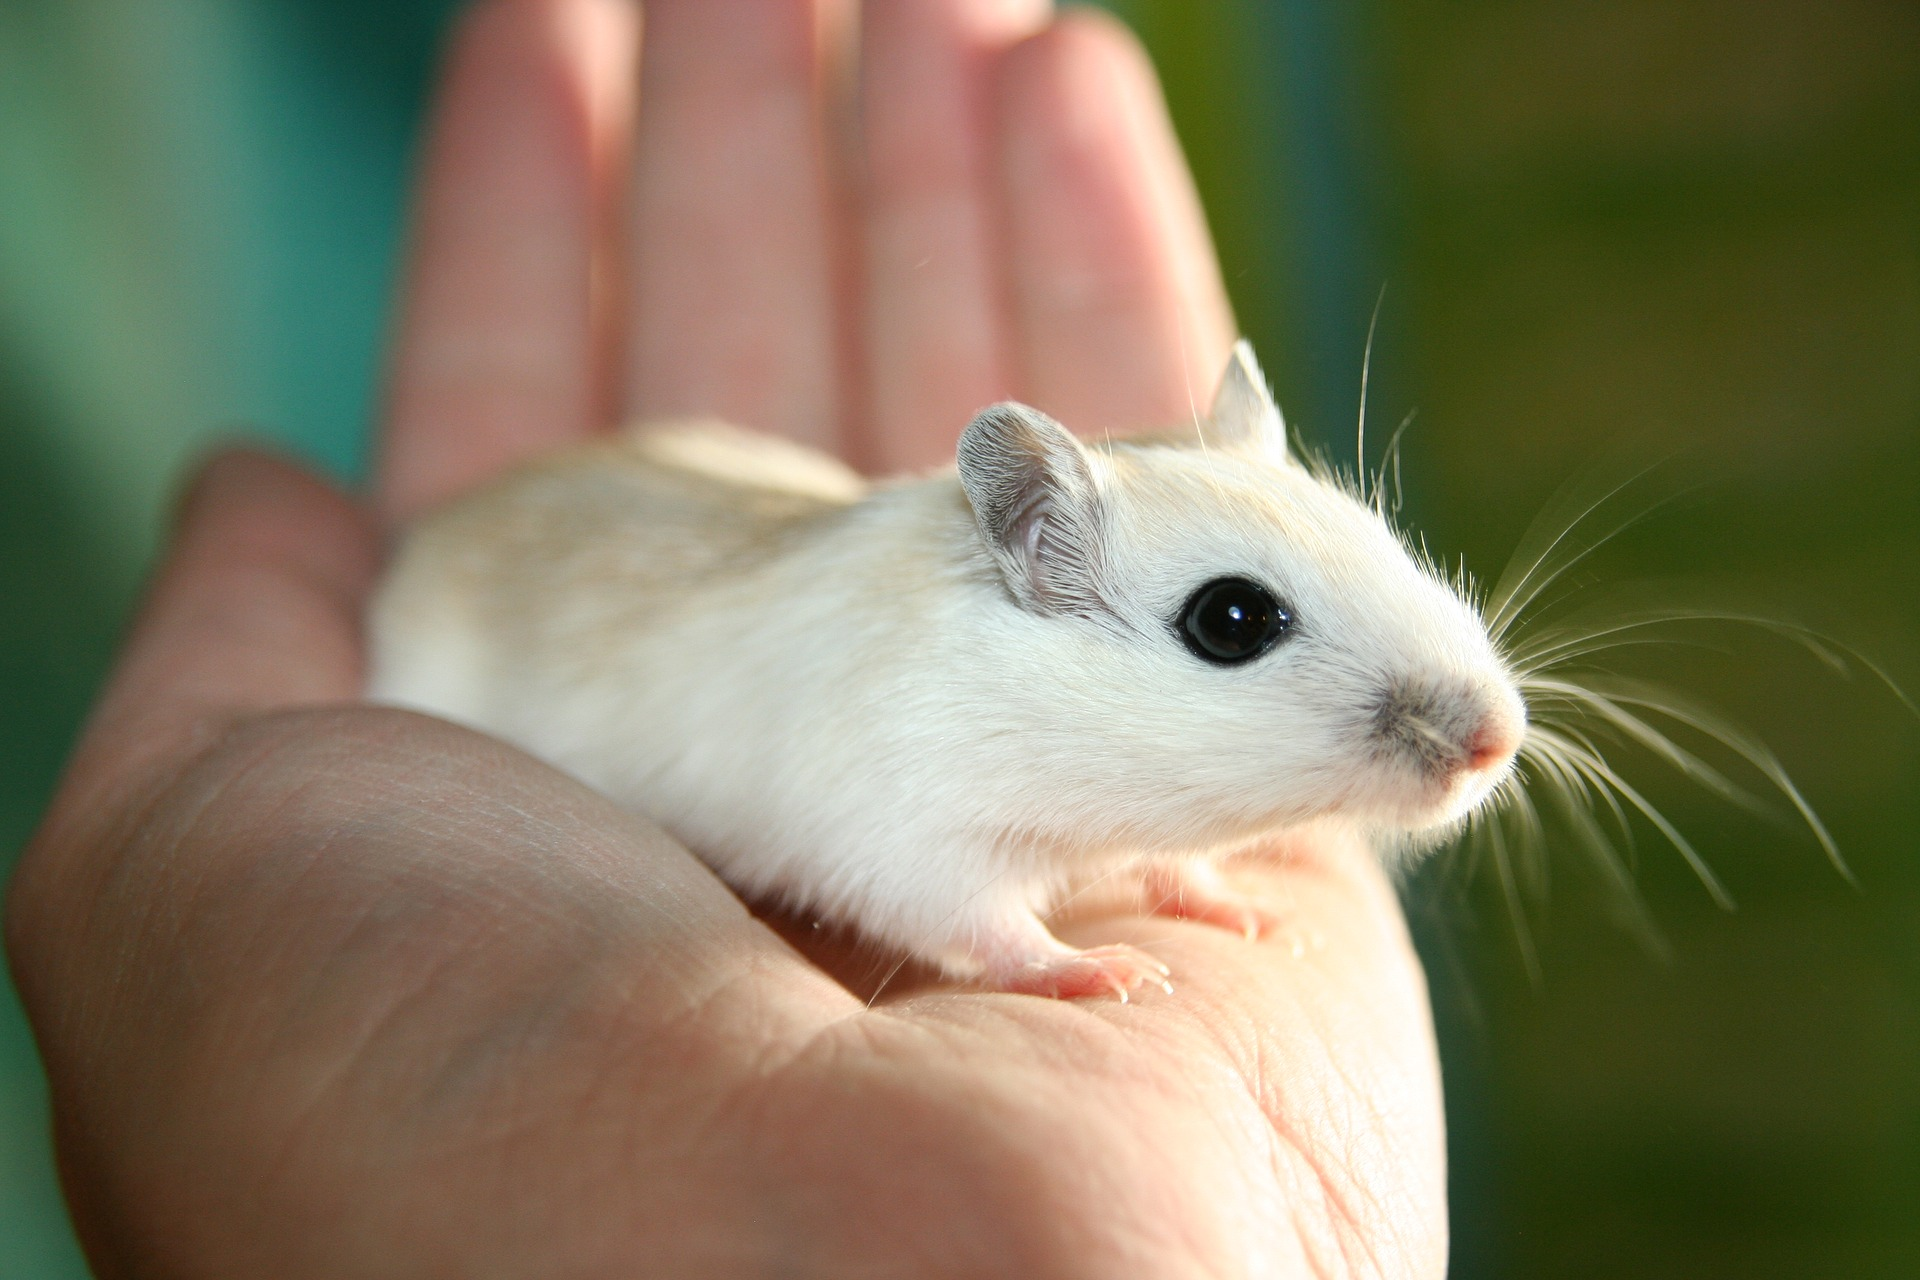 NC3Rs Invites Proposals for Project Grants for Humane Animal Research